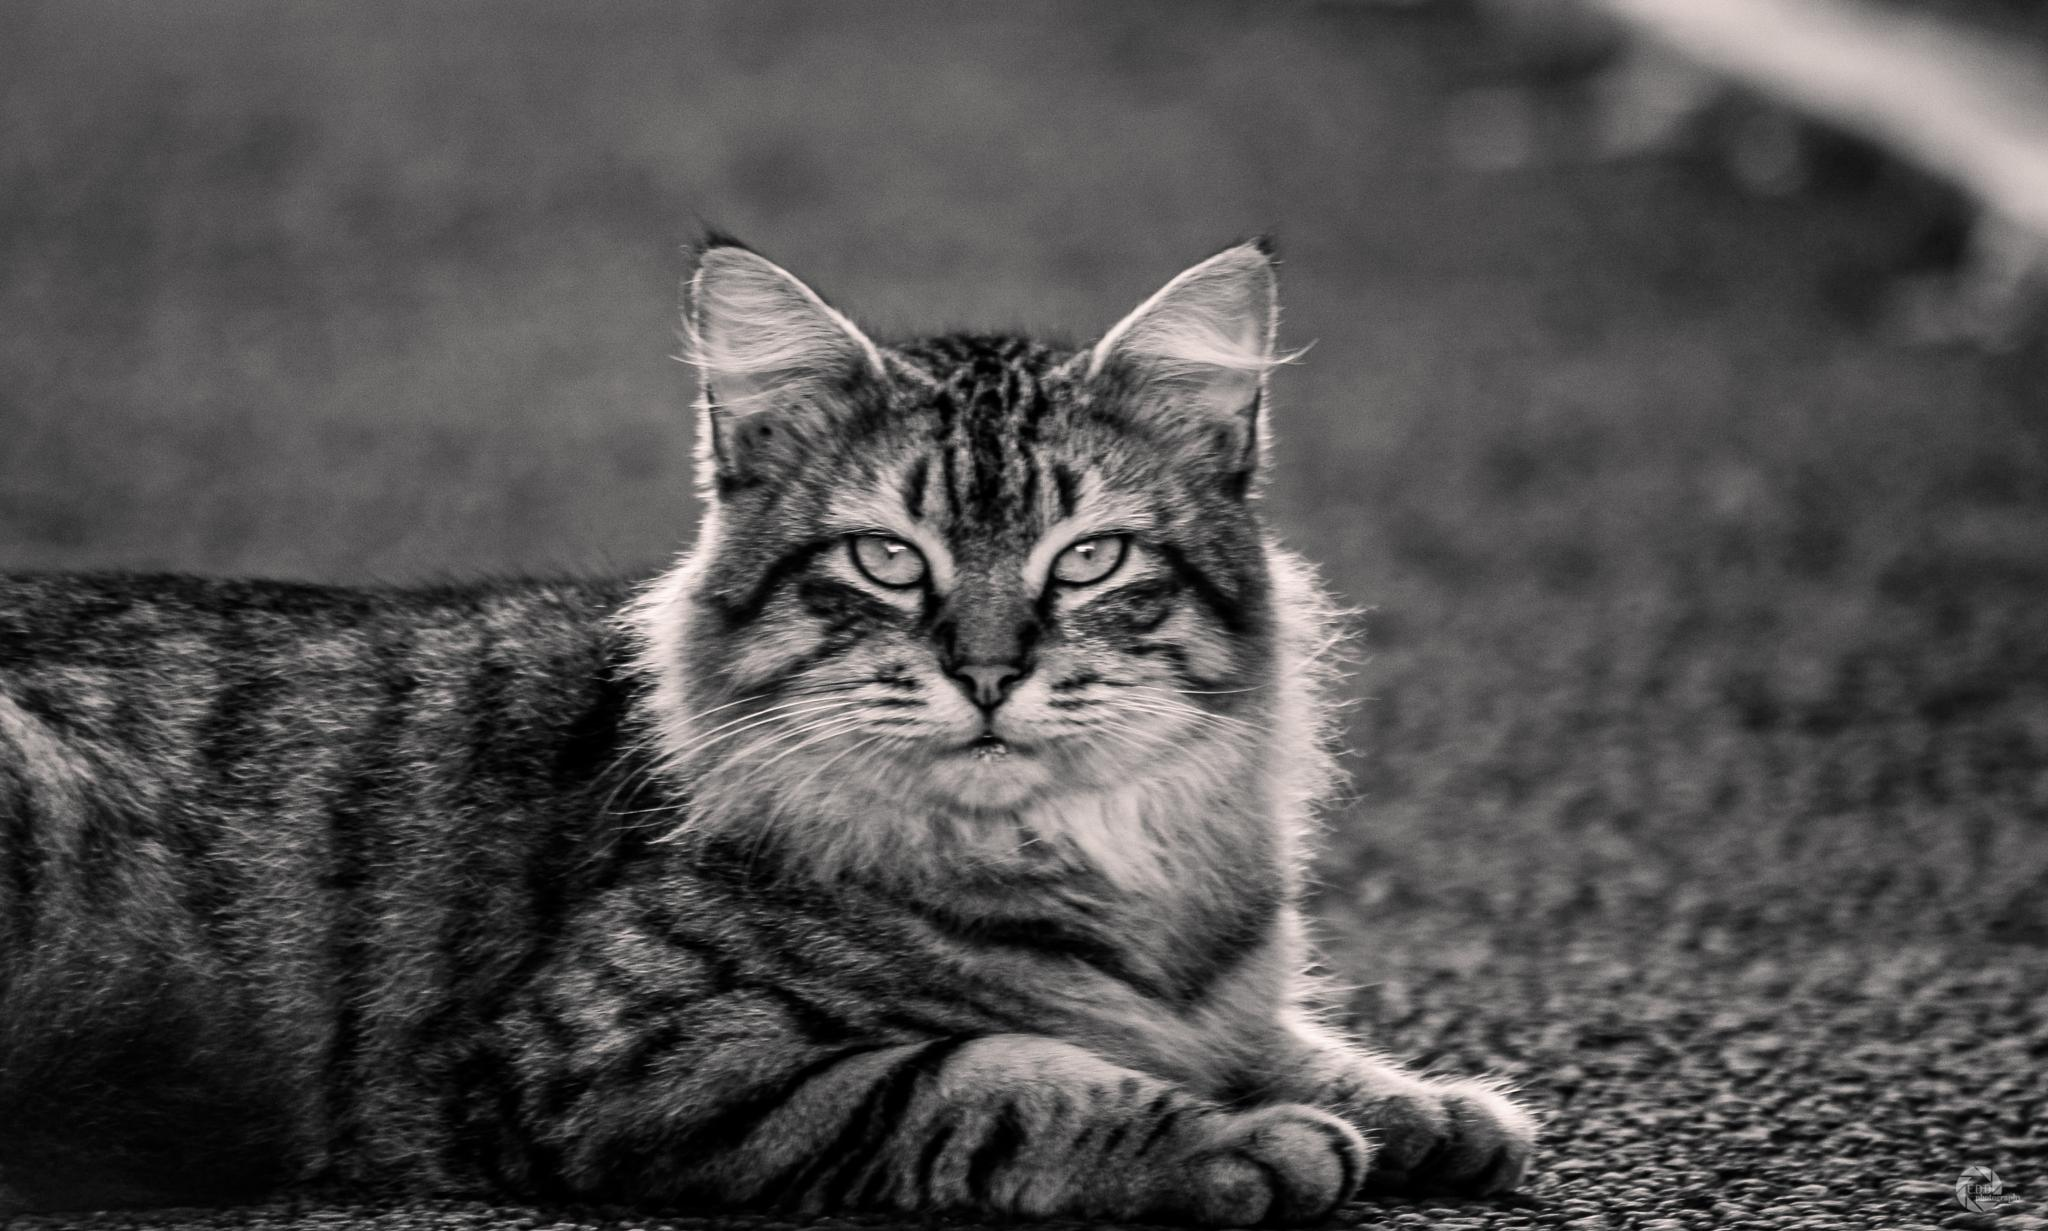 Miaow The Cat by Eshveen Dabee